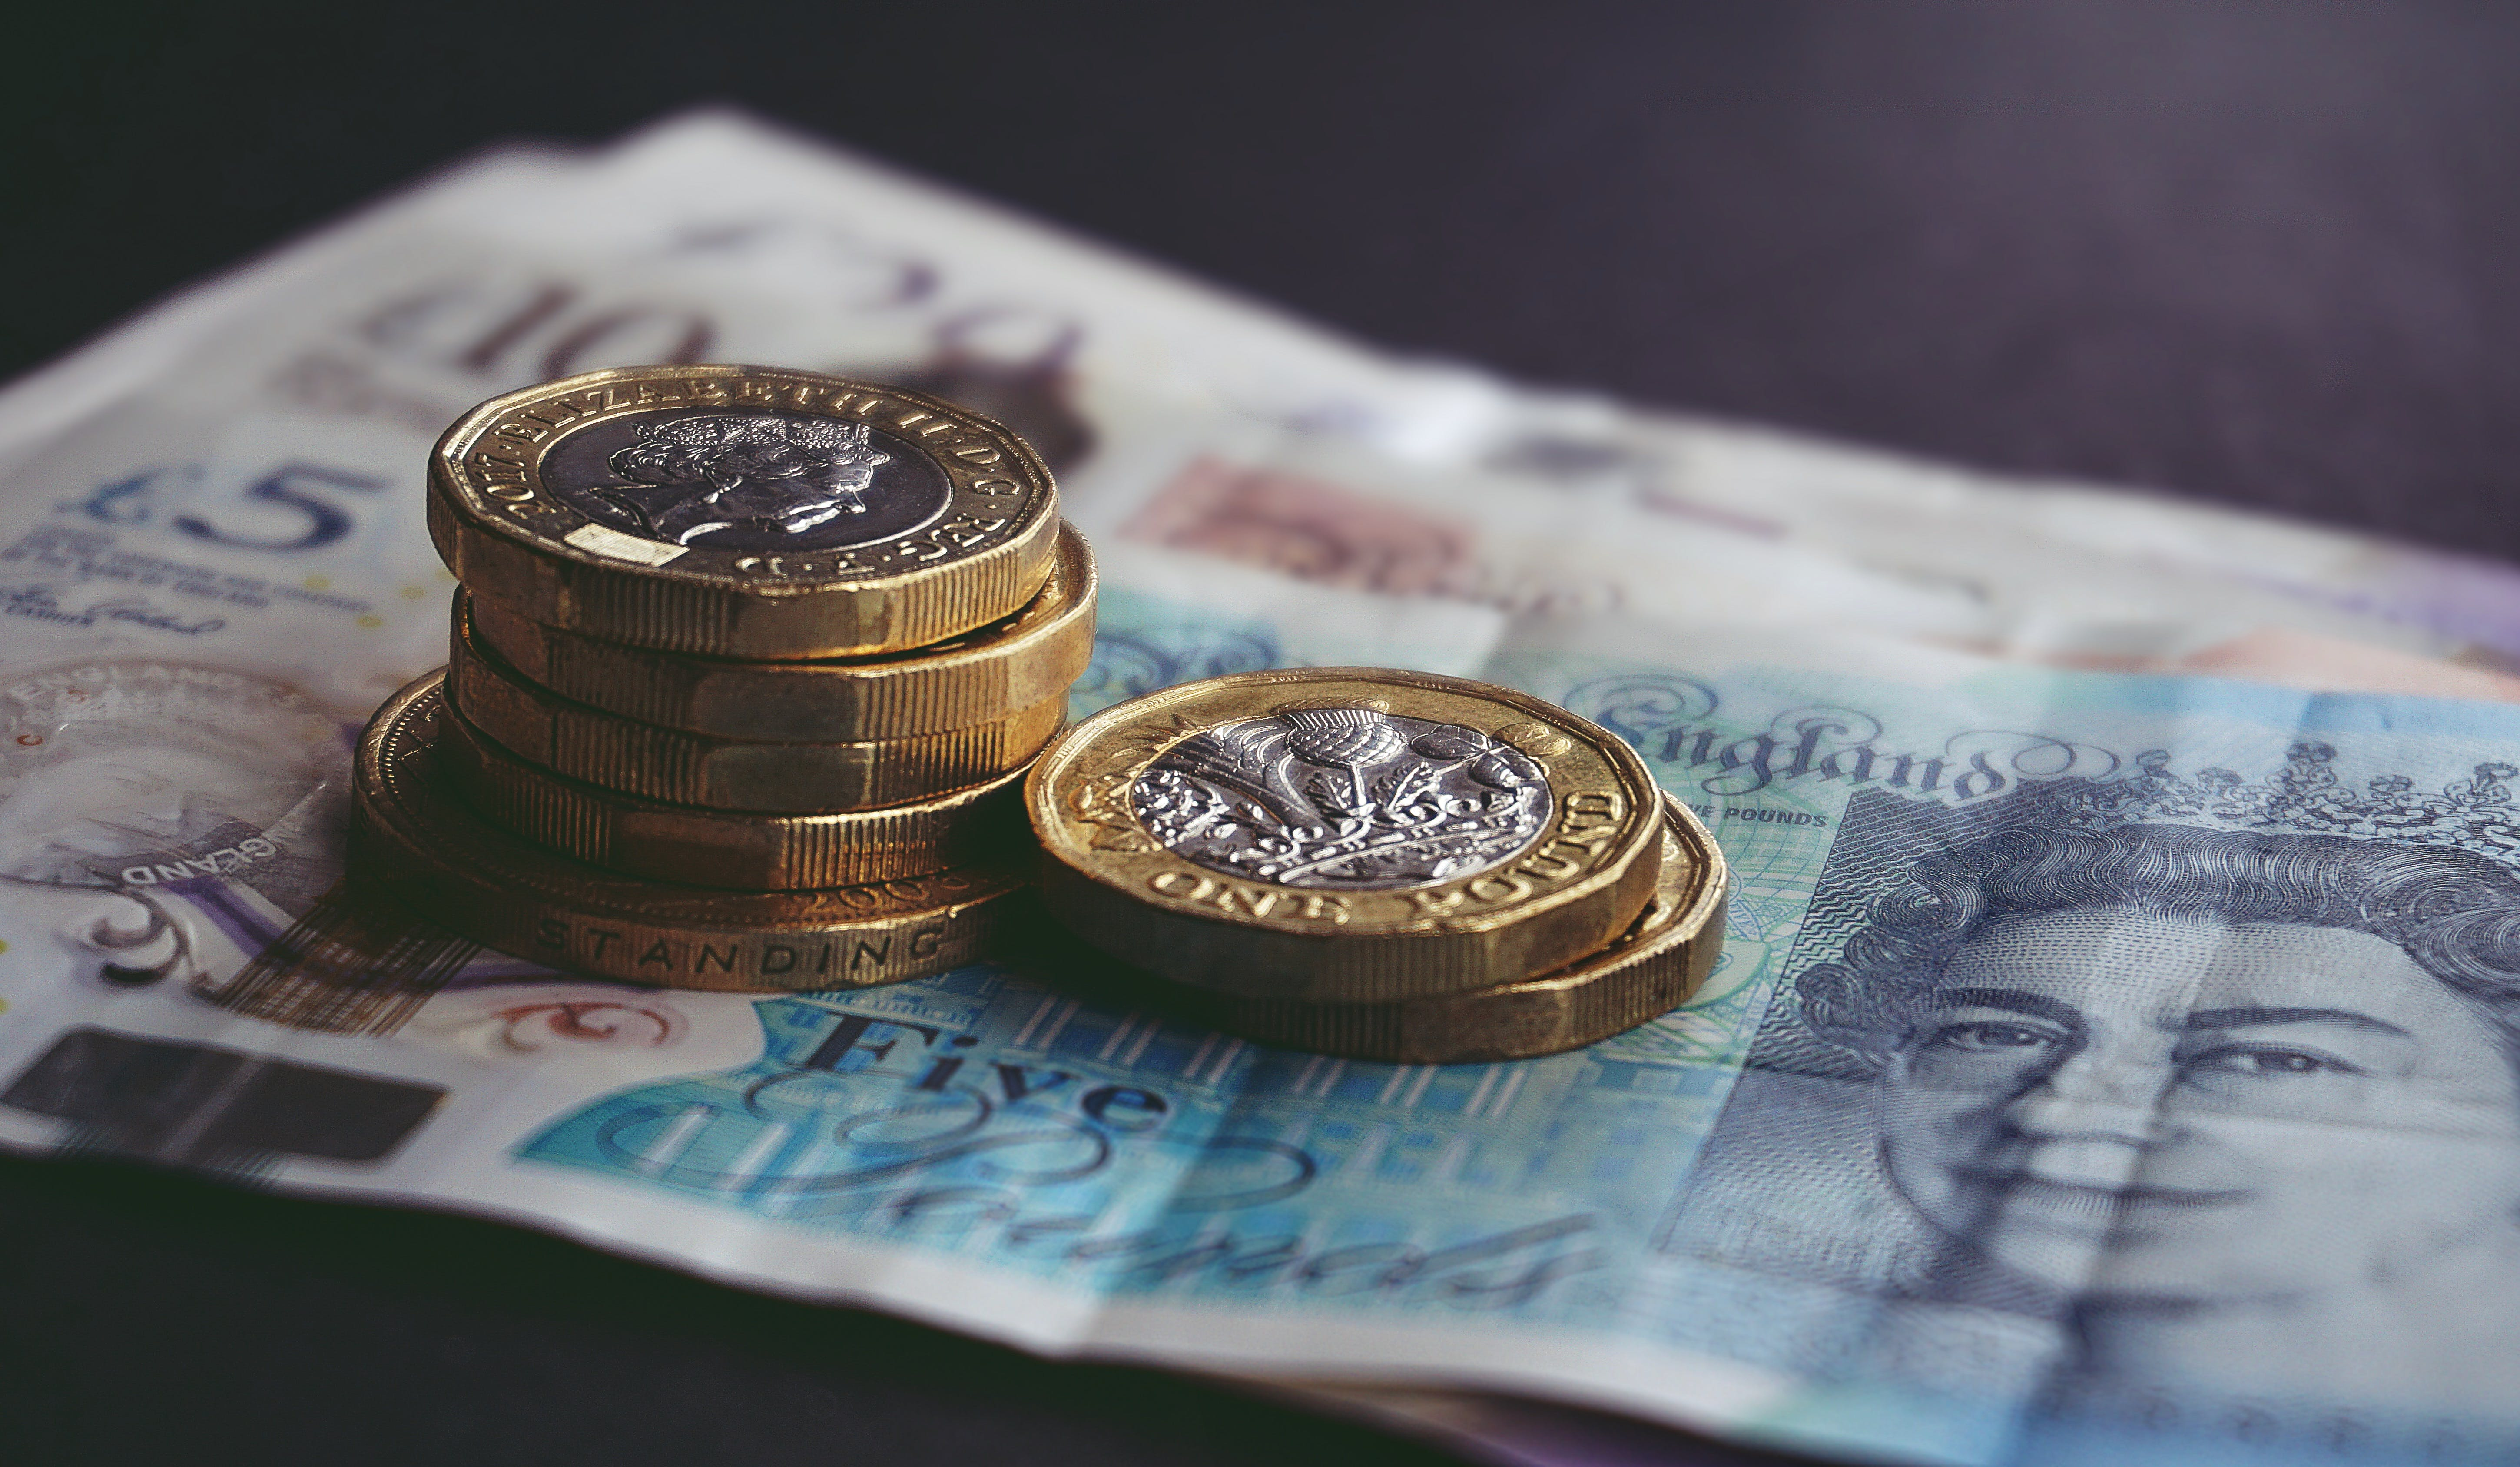 Free stock photo of money, coins, cash, currency